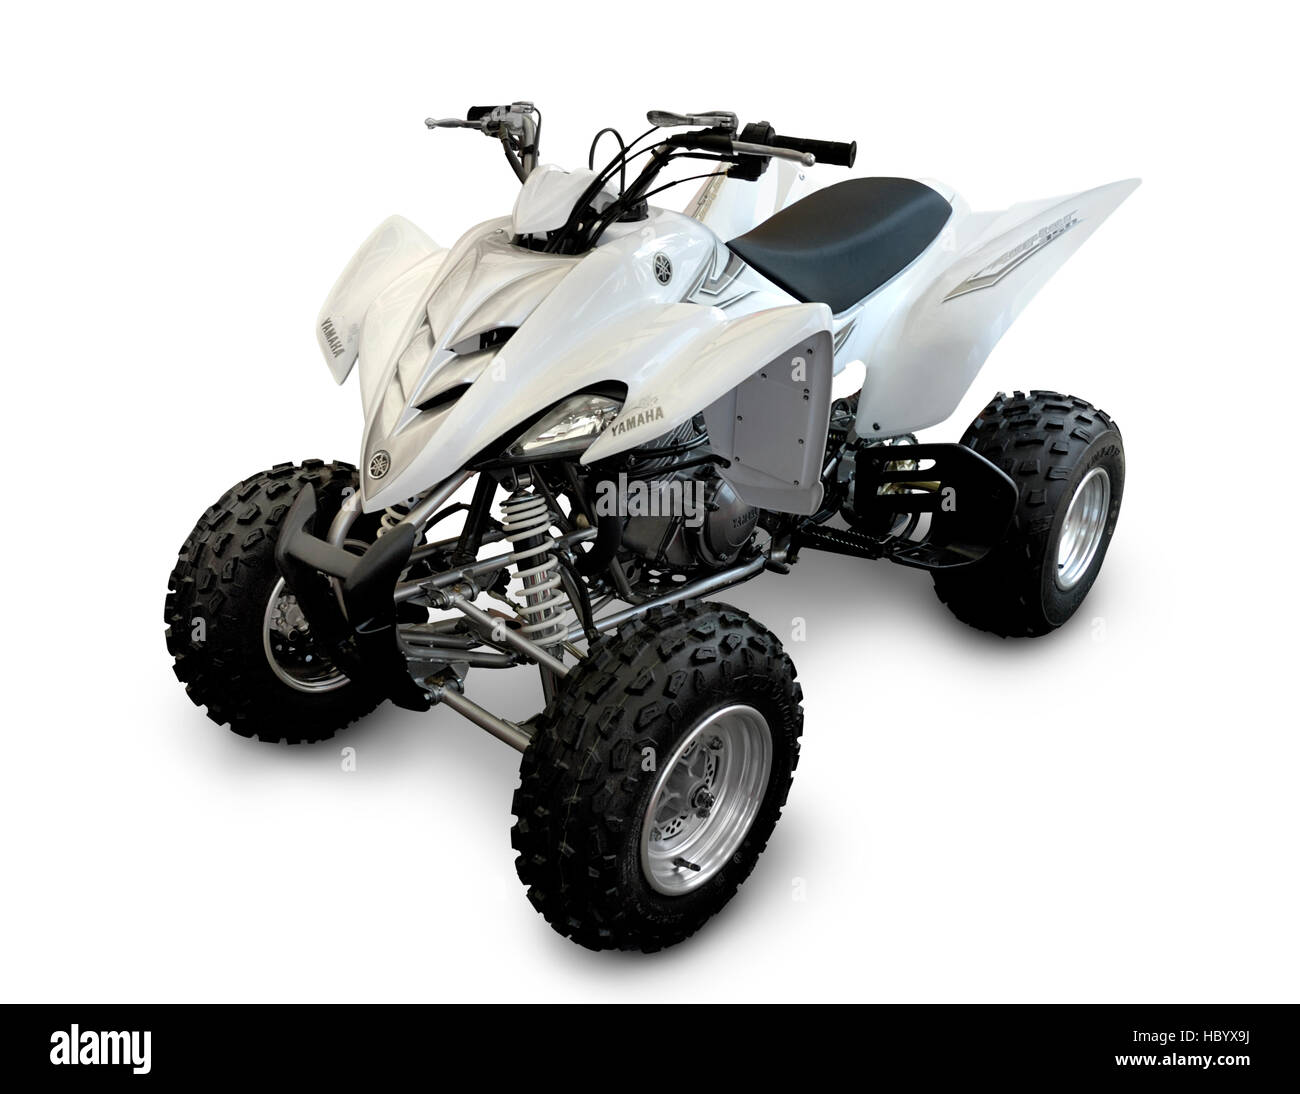 Yamaha Raptor 350 2007, all terrain vehicle, ATV, four wheels bike - Stock Image